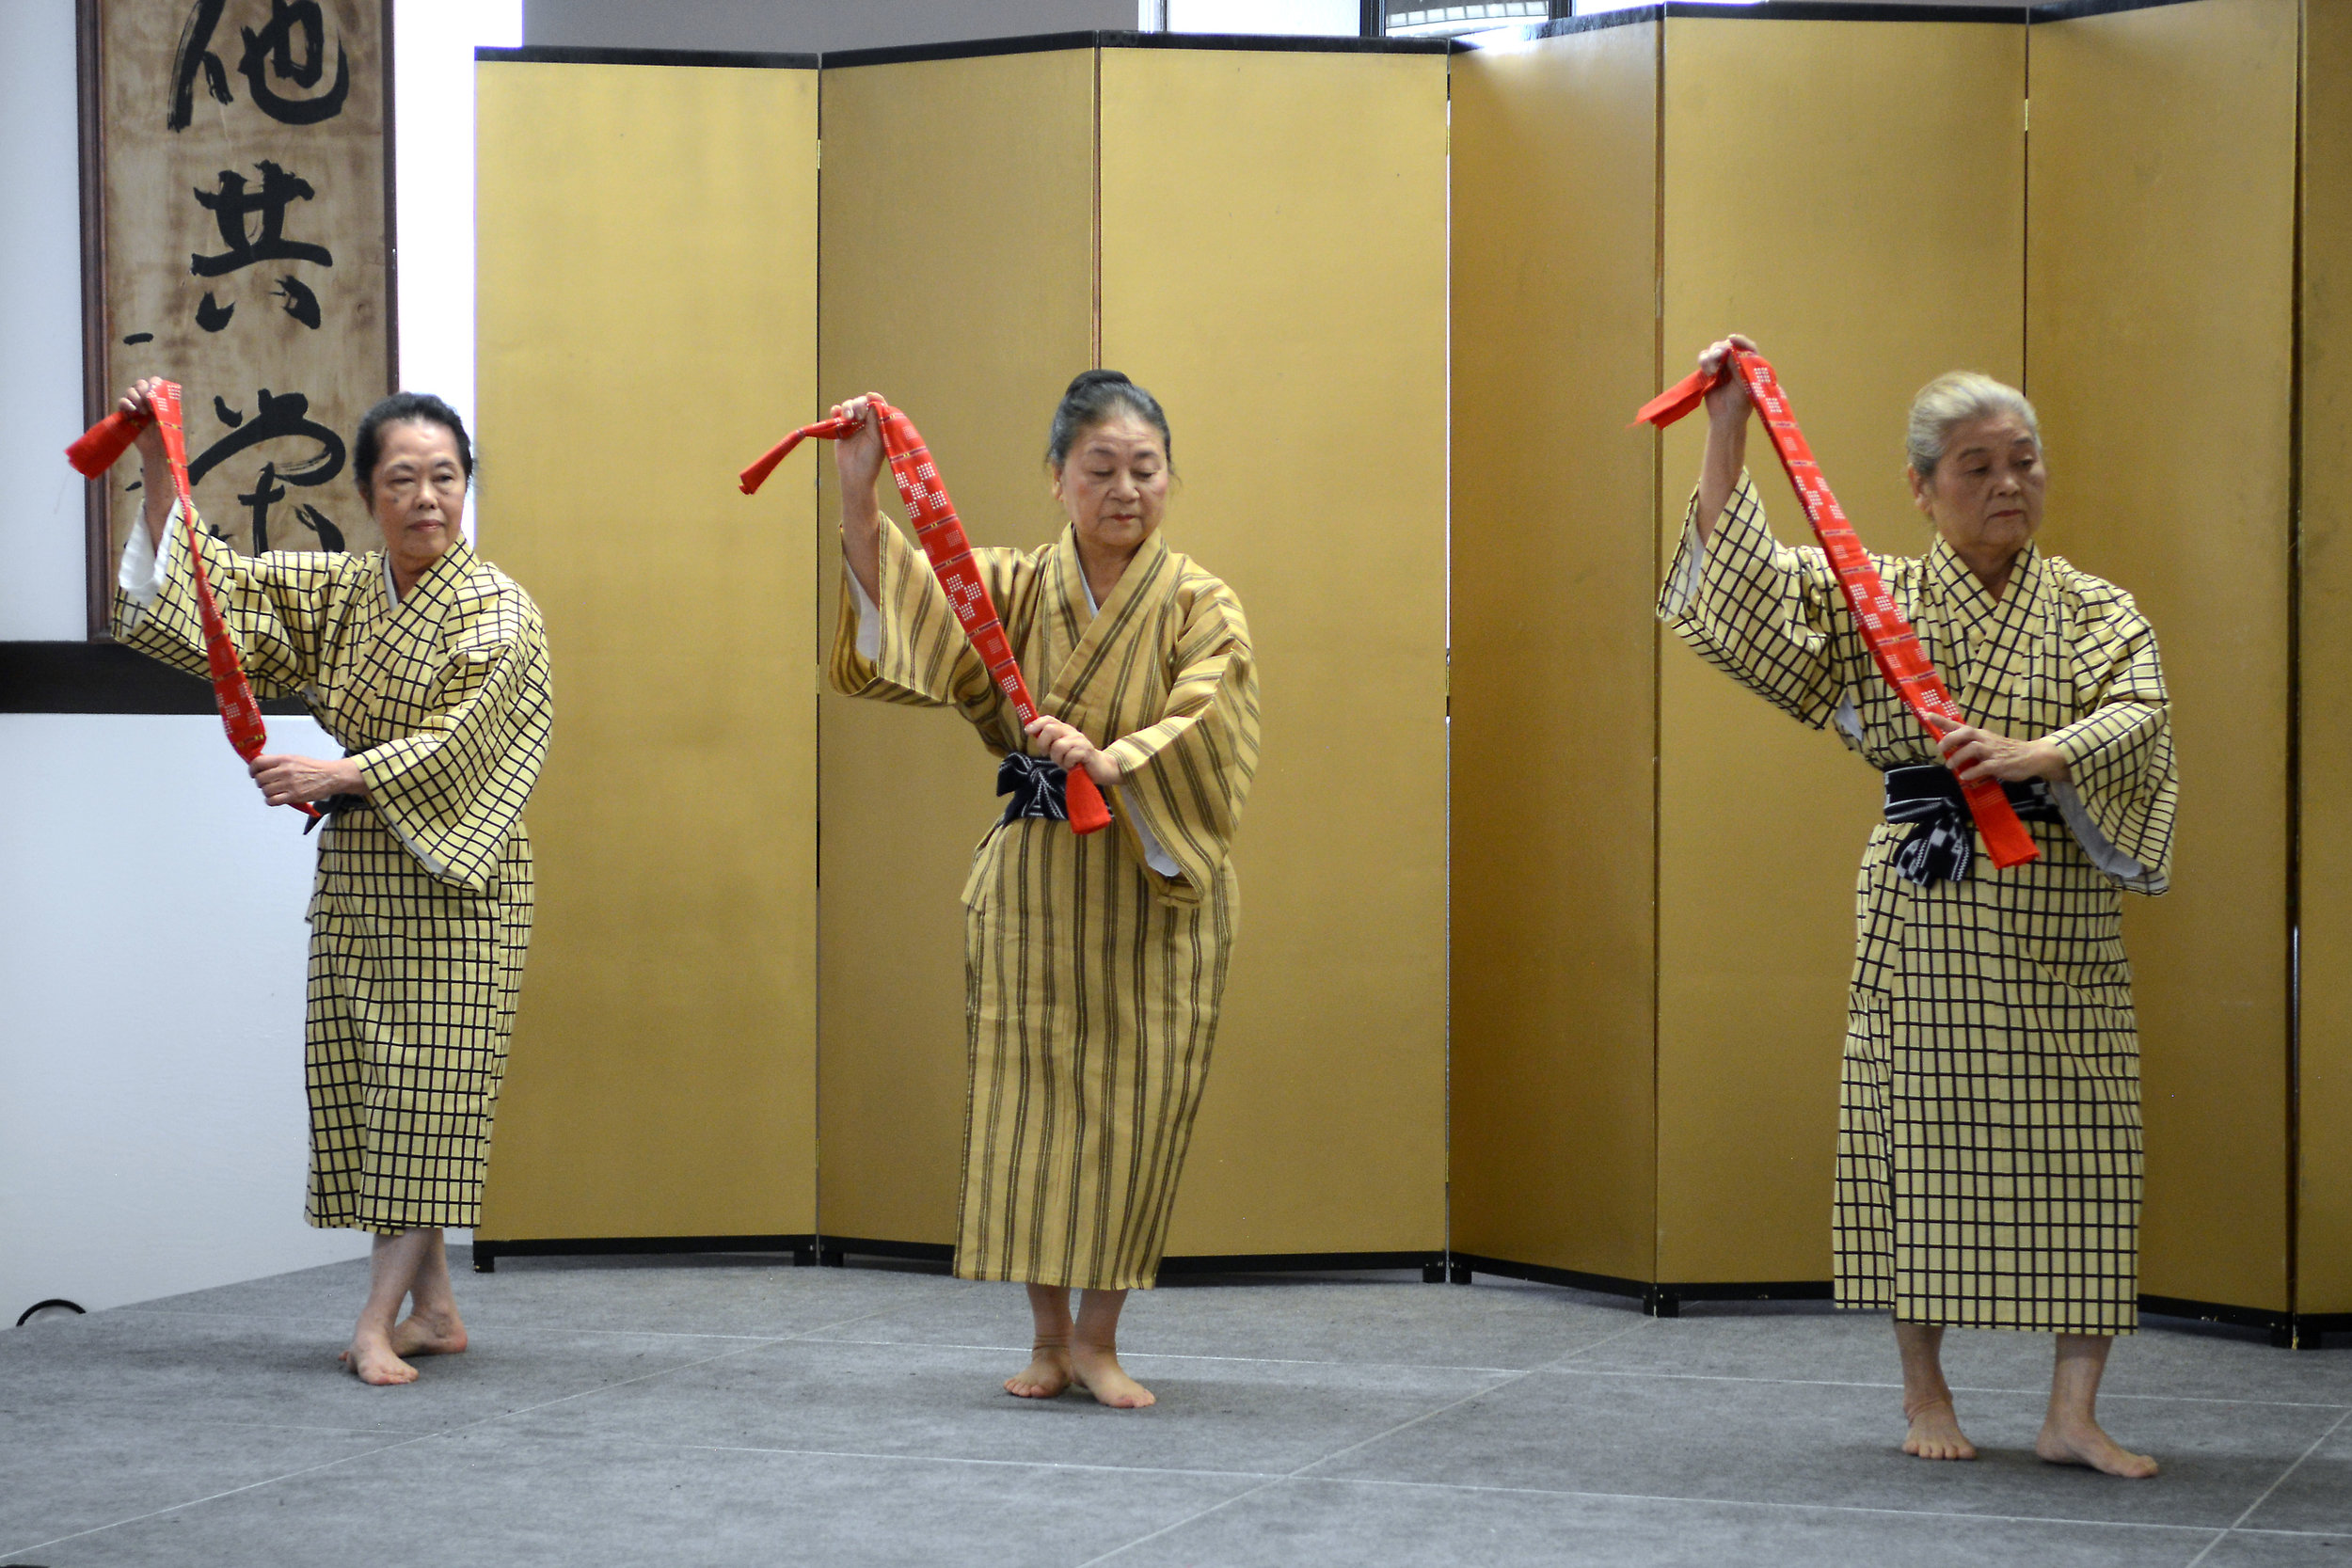 Okinawa performers during Bunka no Hi 2018. Photo by Tyler Sipe